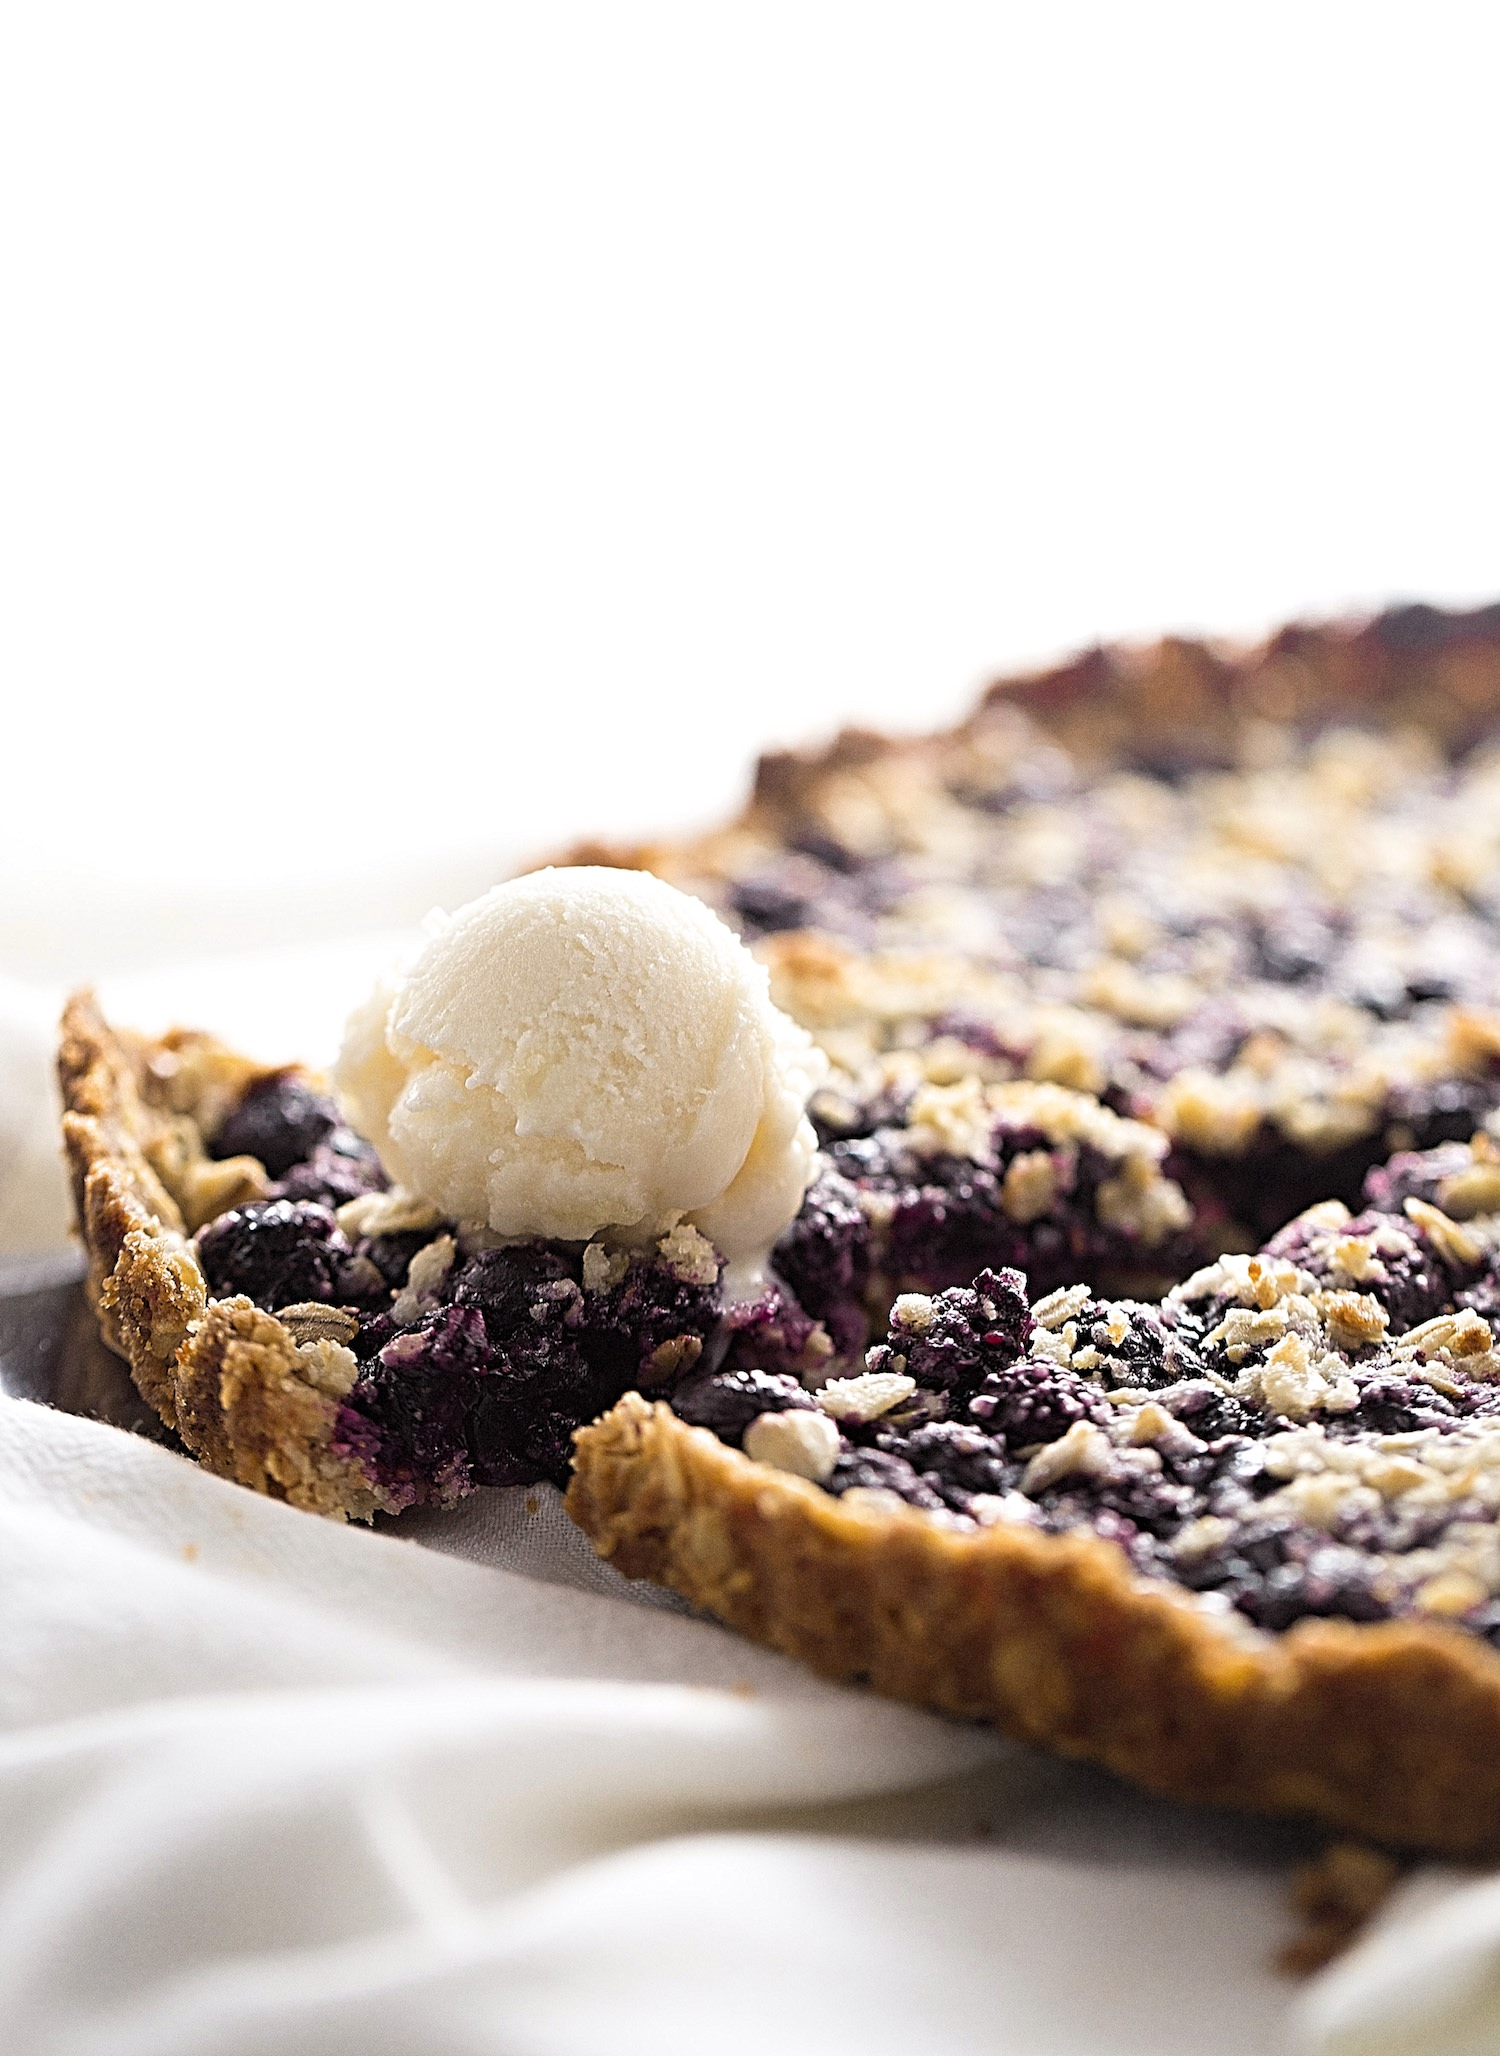 Blueberry Oat Crumble Tart: hearty, crunchy, oat crust topped with tart, juicy blueberries and more crumble on top. Video Included!   TrufflesandTrends.com